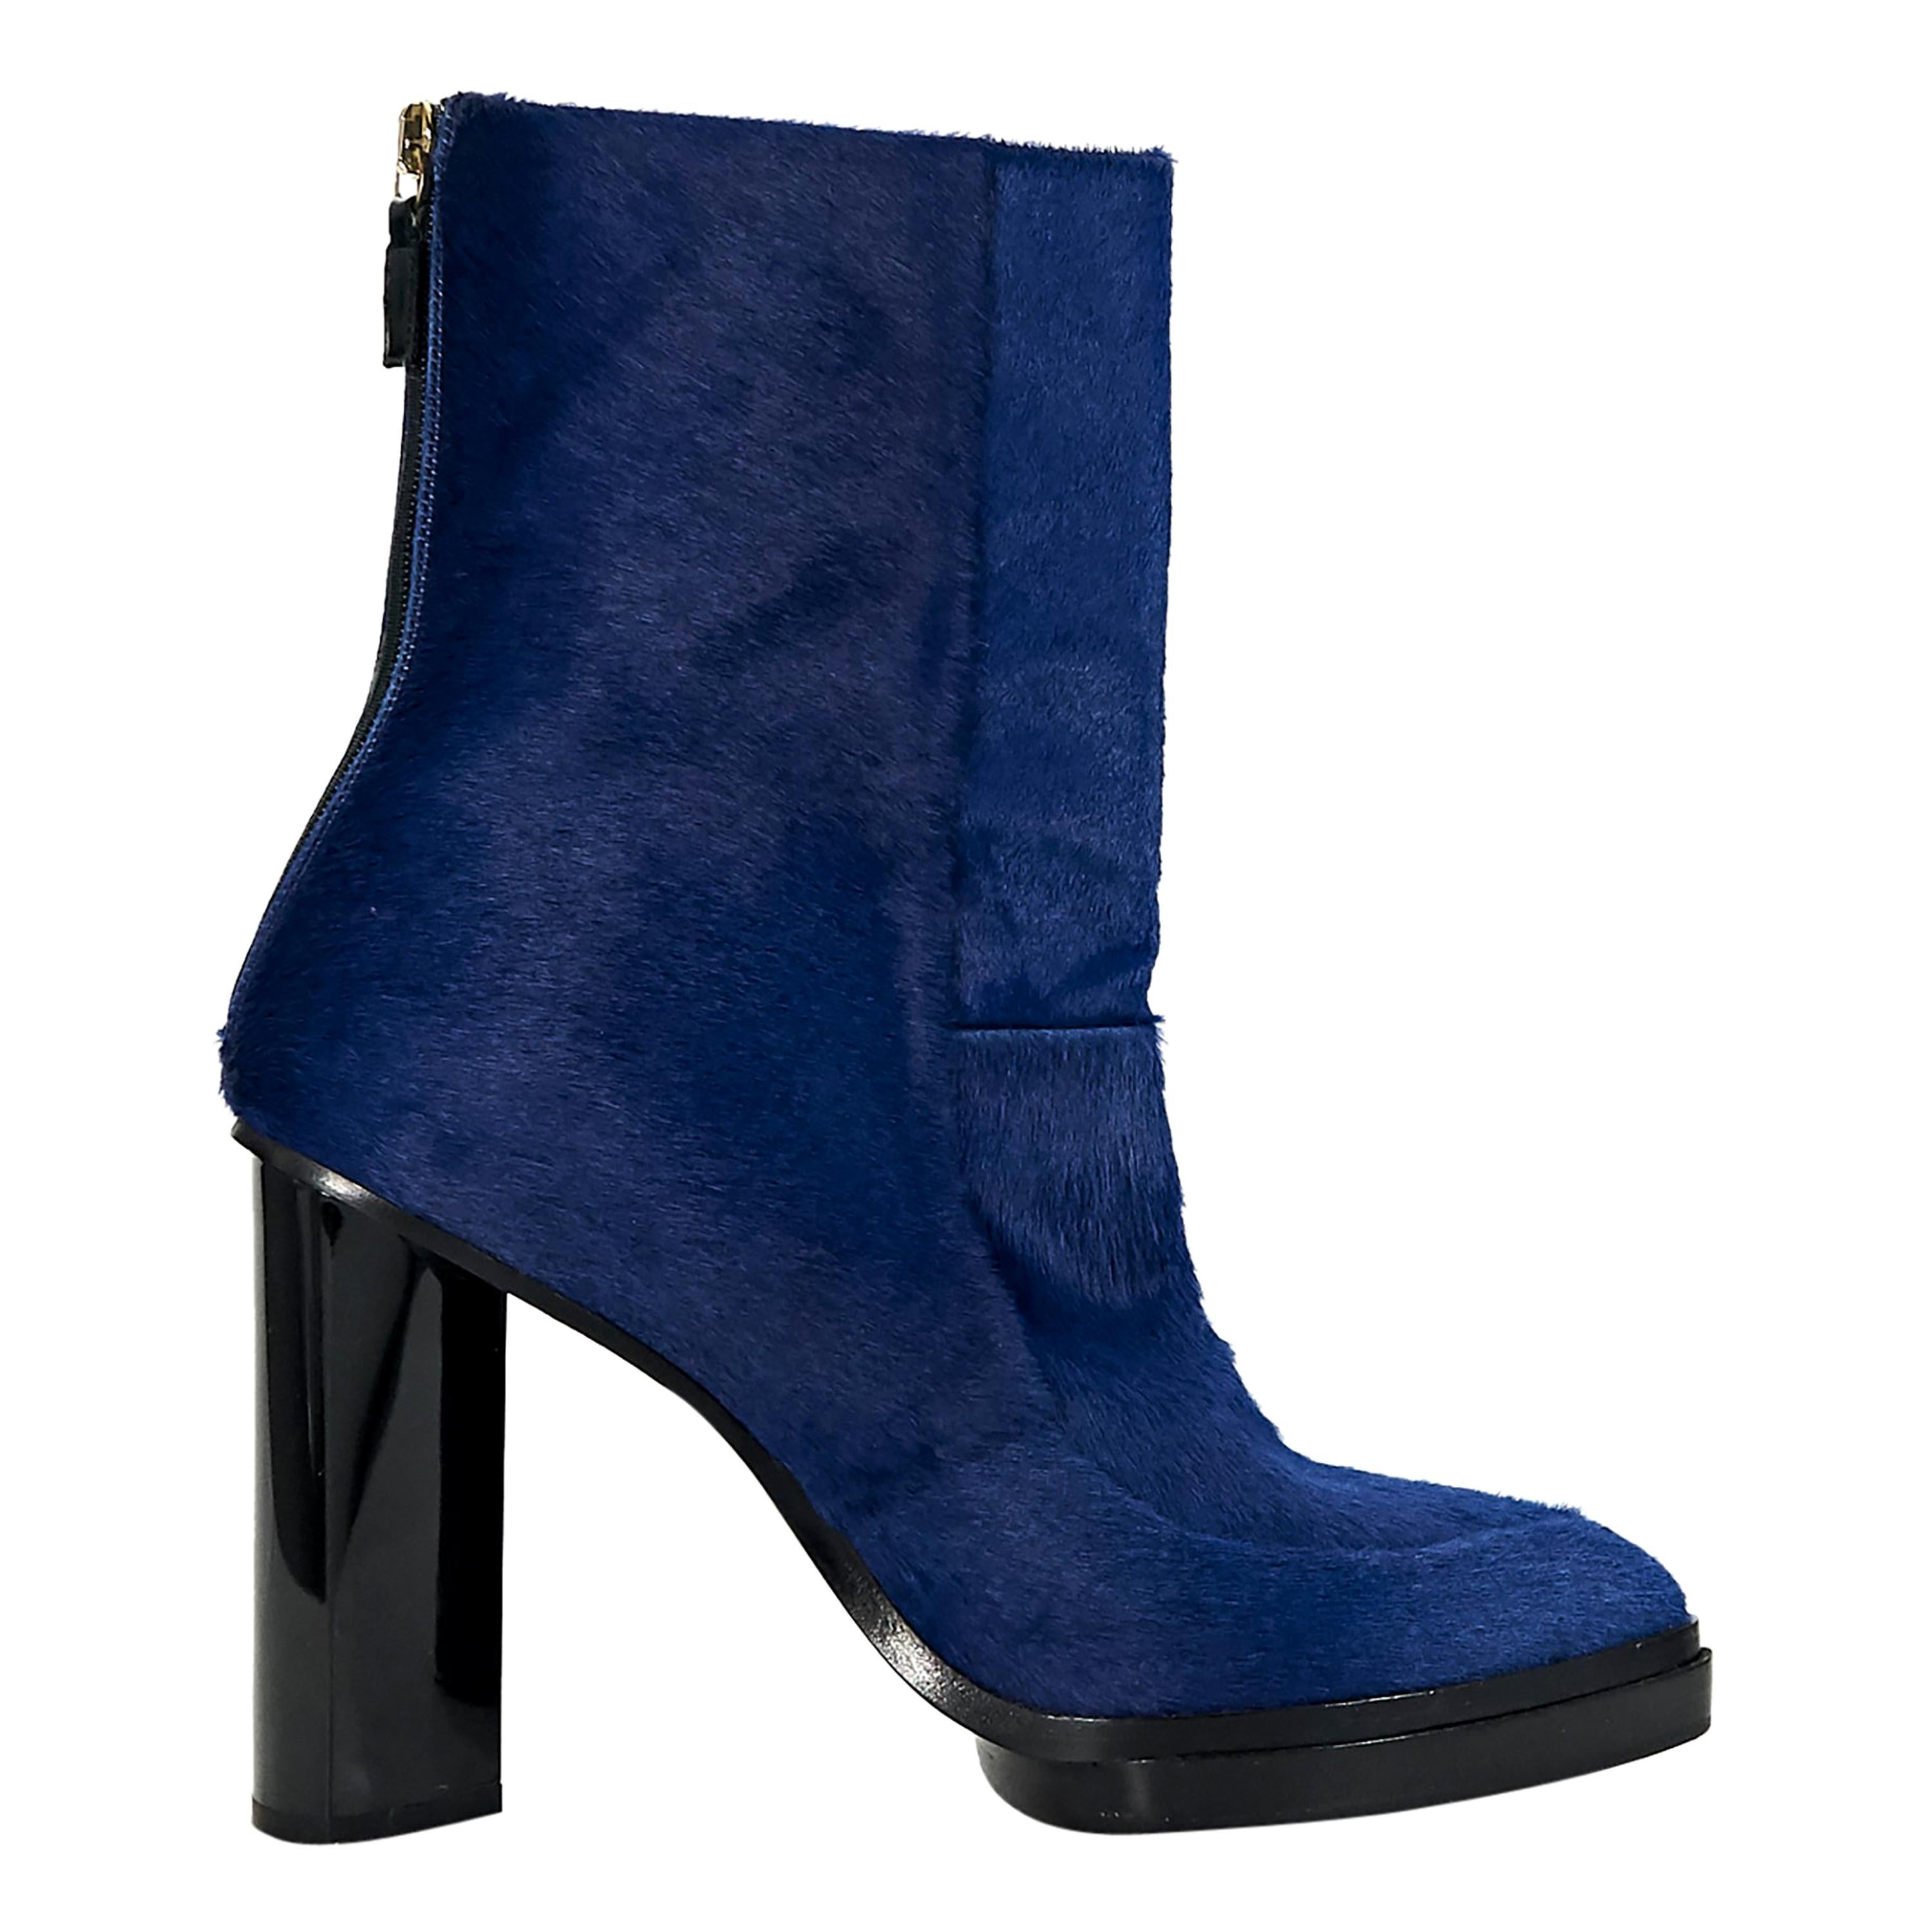 Blue Jason Wu Pony Hair Ankle Boots For Sale At 1stdibs